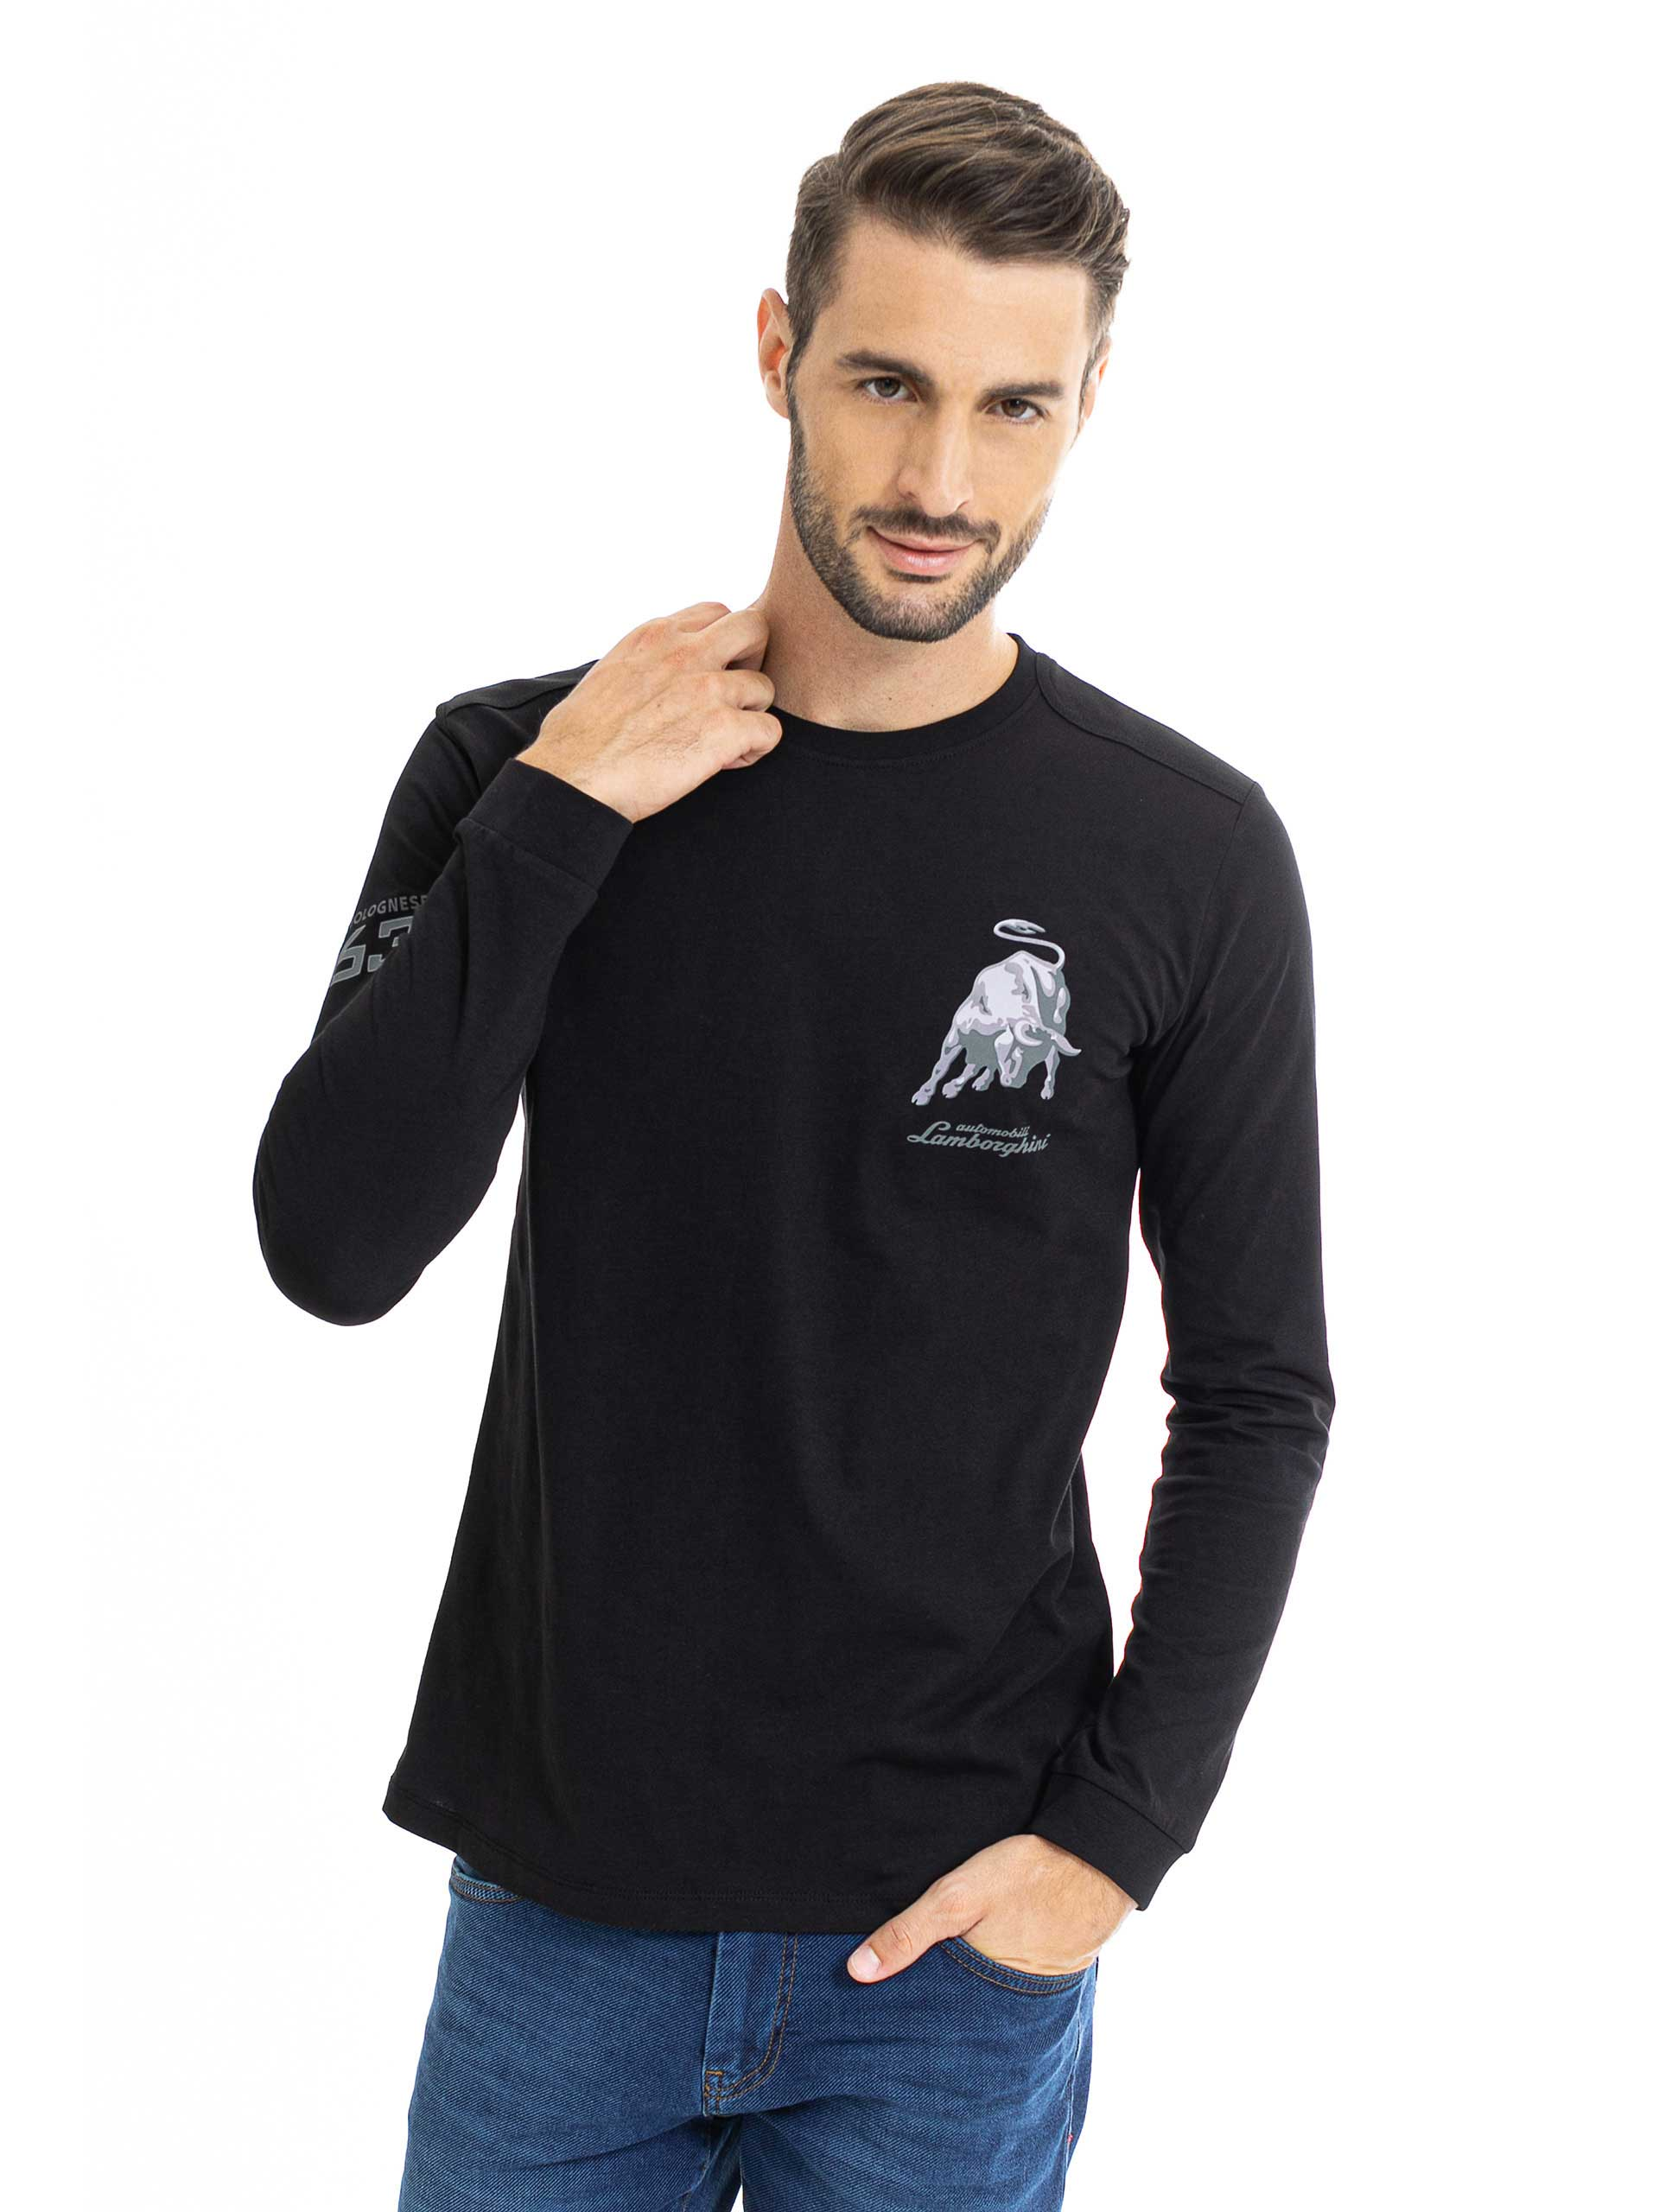 Lamborghini Men's Small Bull Long Sleeve T-Shirt Black